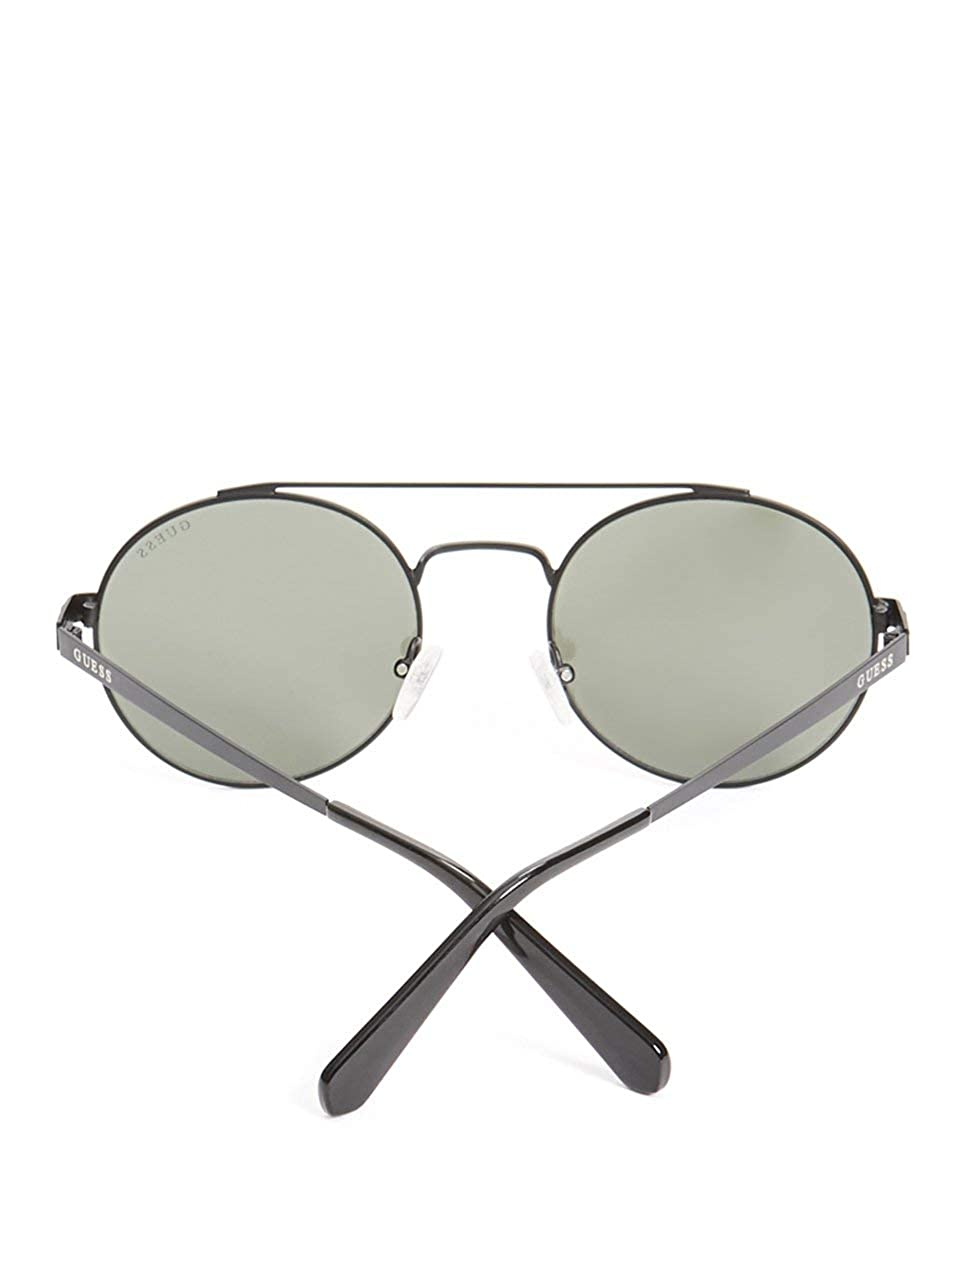 GUESS Mens Jack Round Aviator Sunglasses